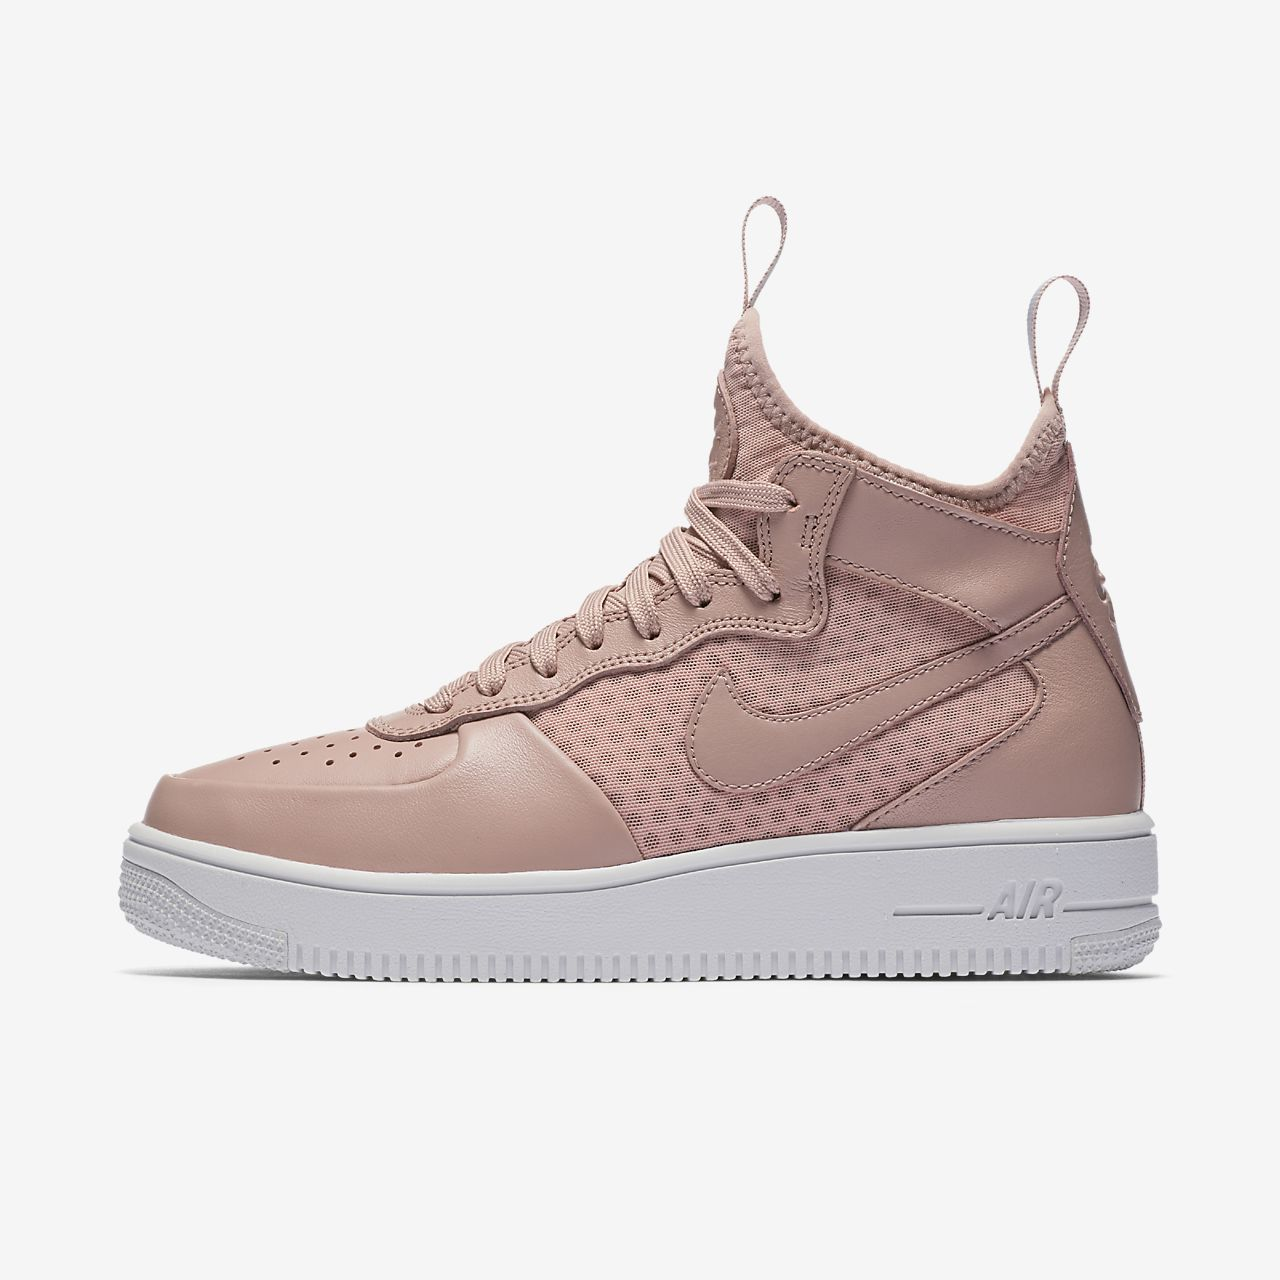 nike air force 1 ultra force womens shoe Going the Distance with Nike Kobe  Philippines. efcca55028